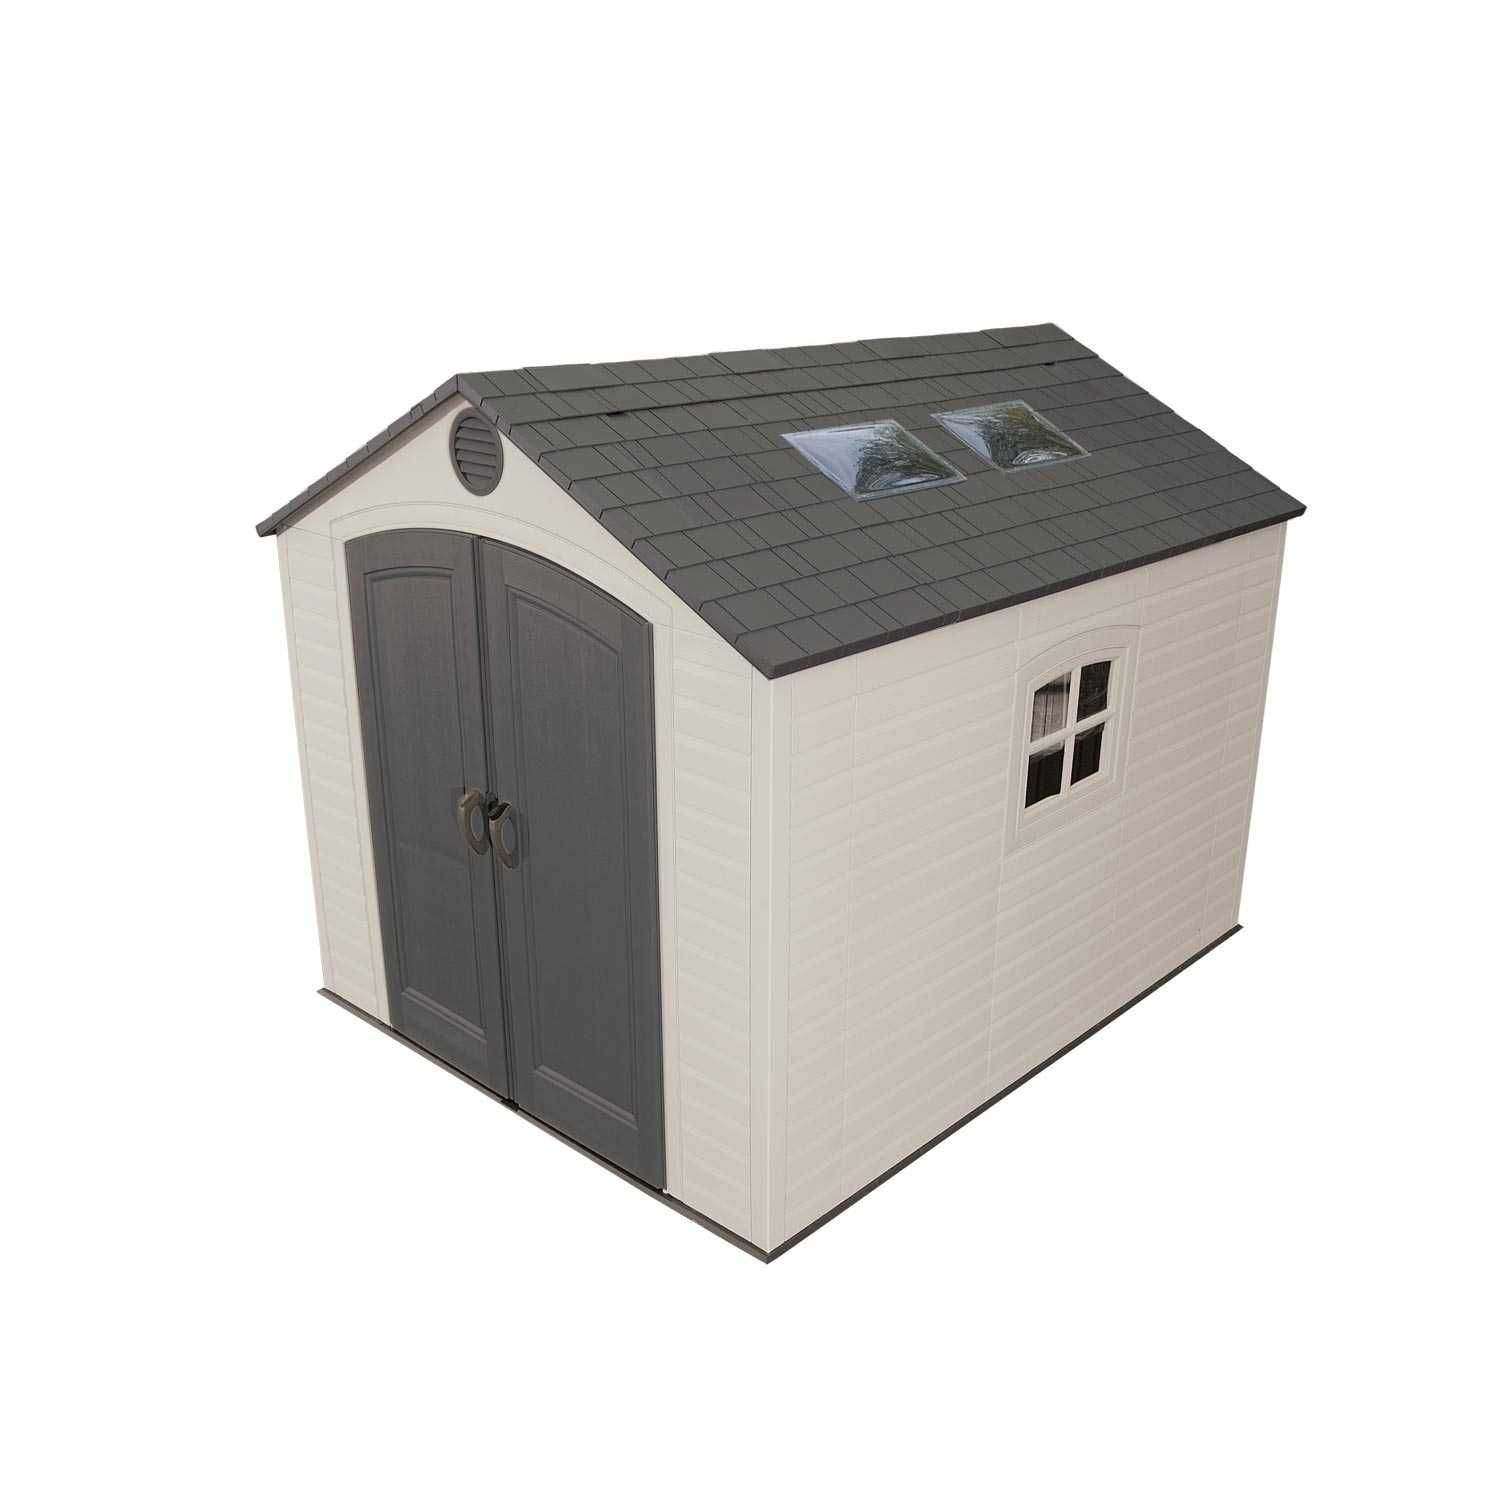 6409 71 square ft 491 cubic ft the lifetime 8 39 x for Large plastic sheds